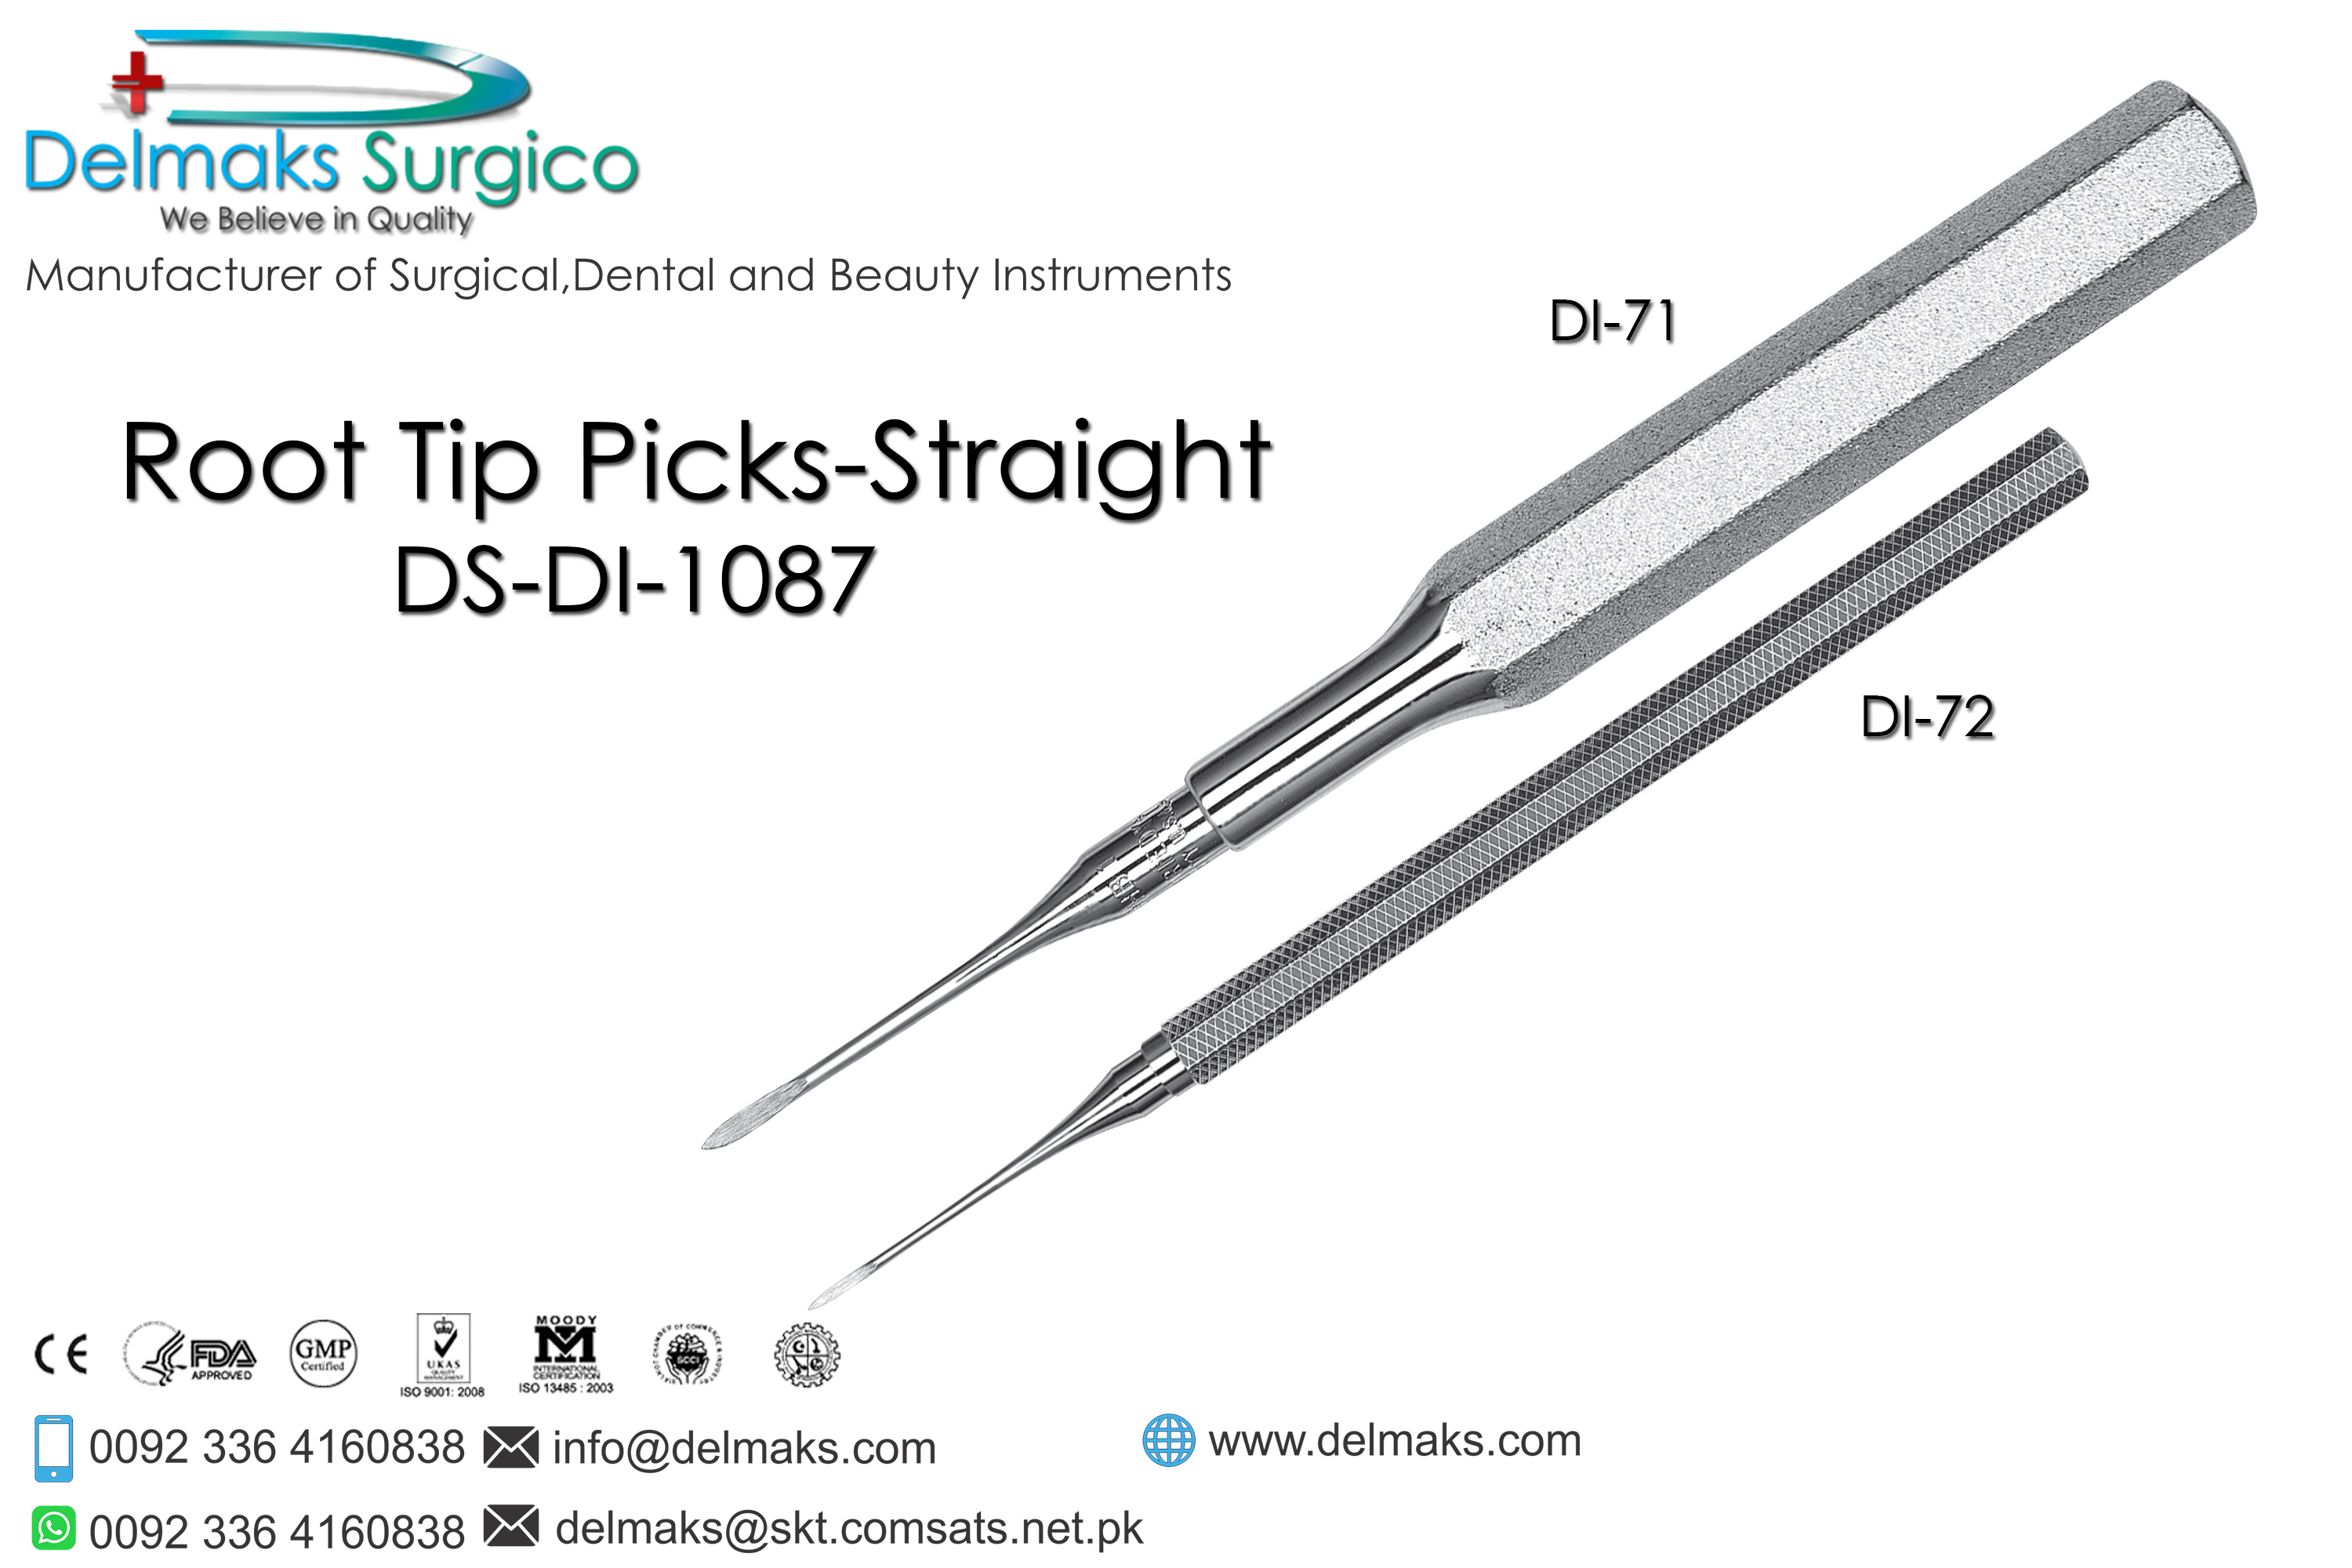 Root Tip Picks Straight-Oral And Maxillofacial Surgery Instruments-Dental Instruments-Delmaks Surgico